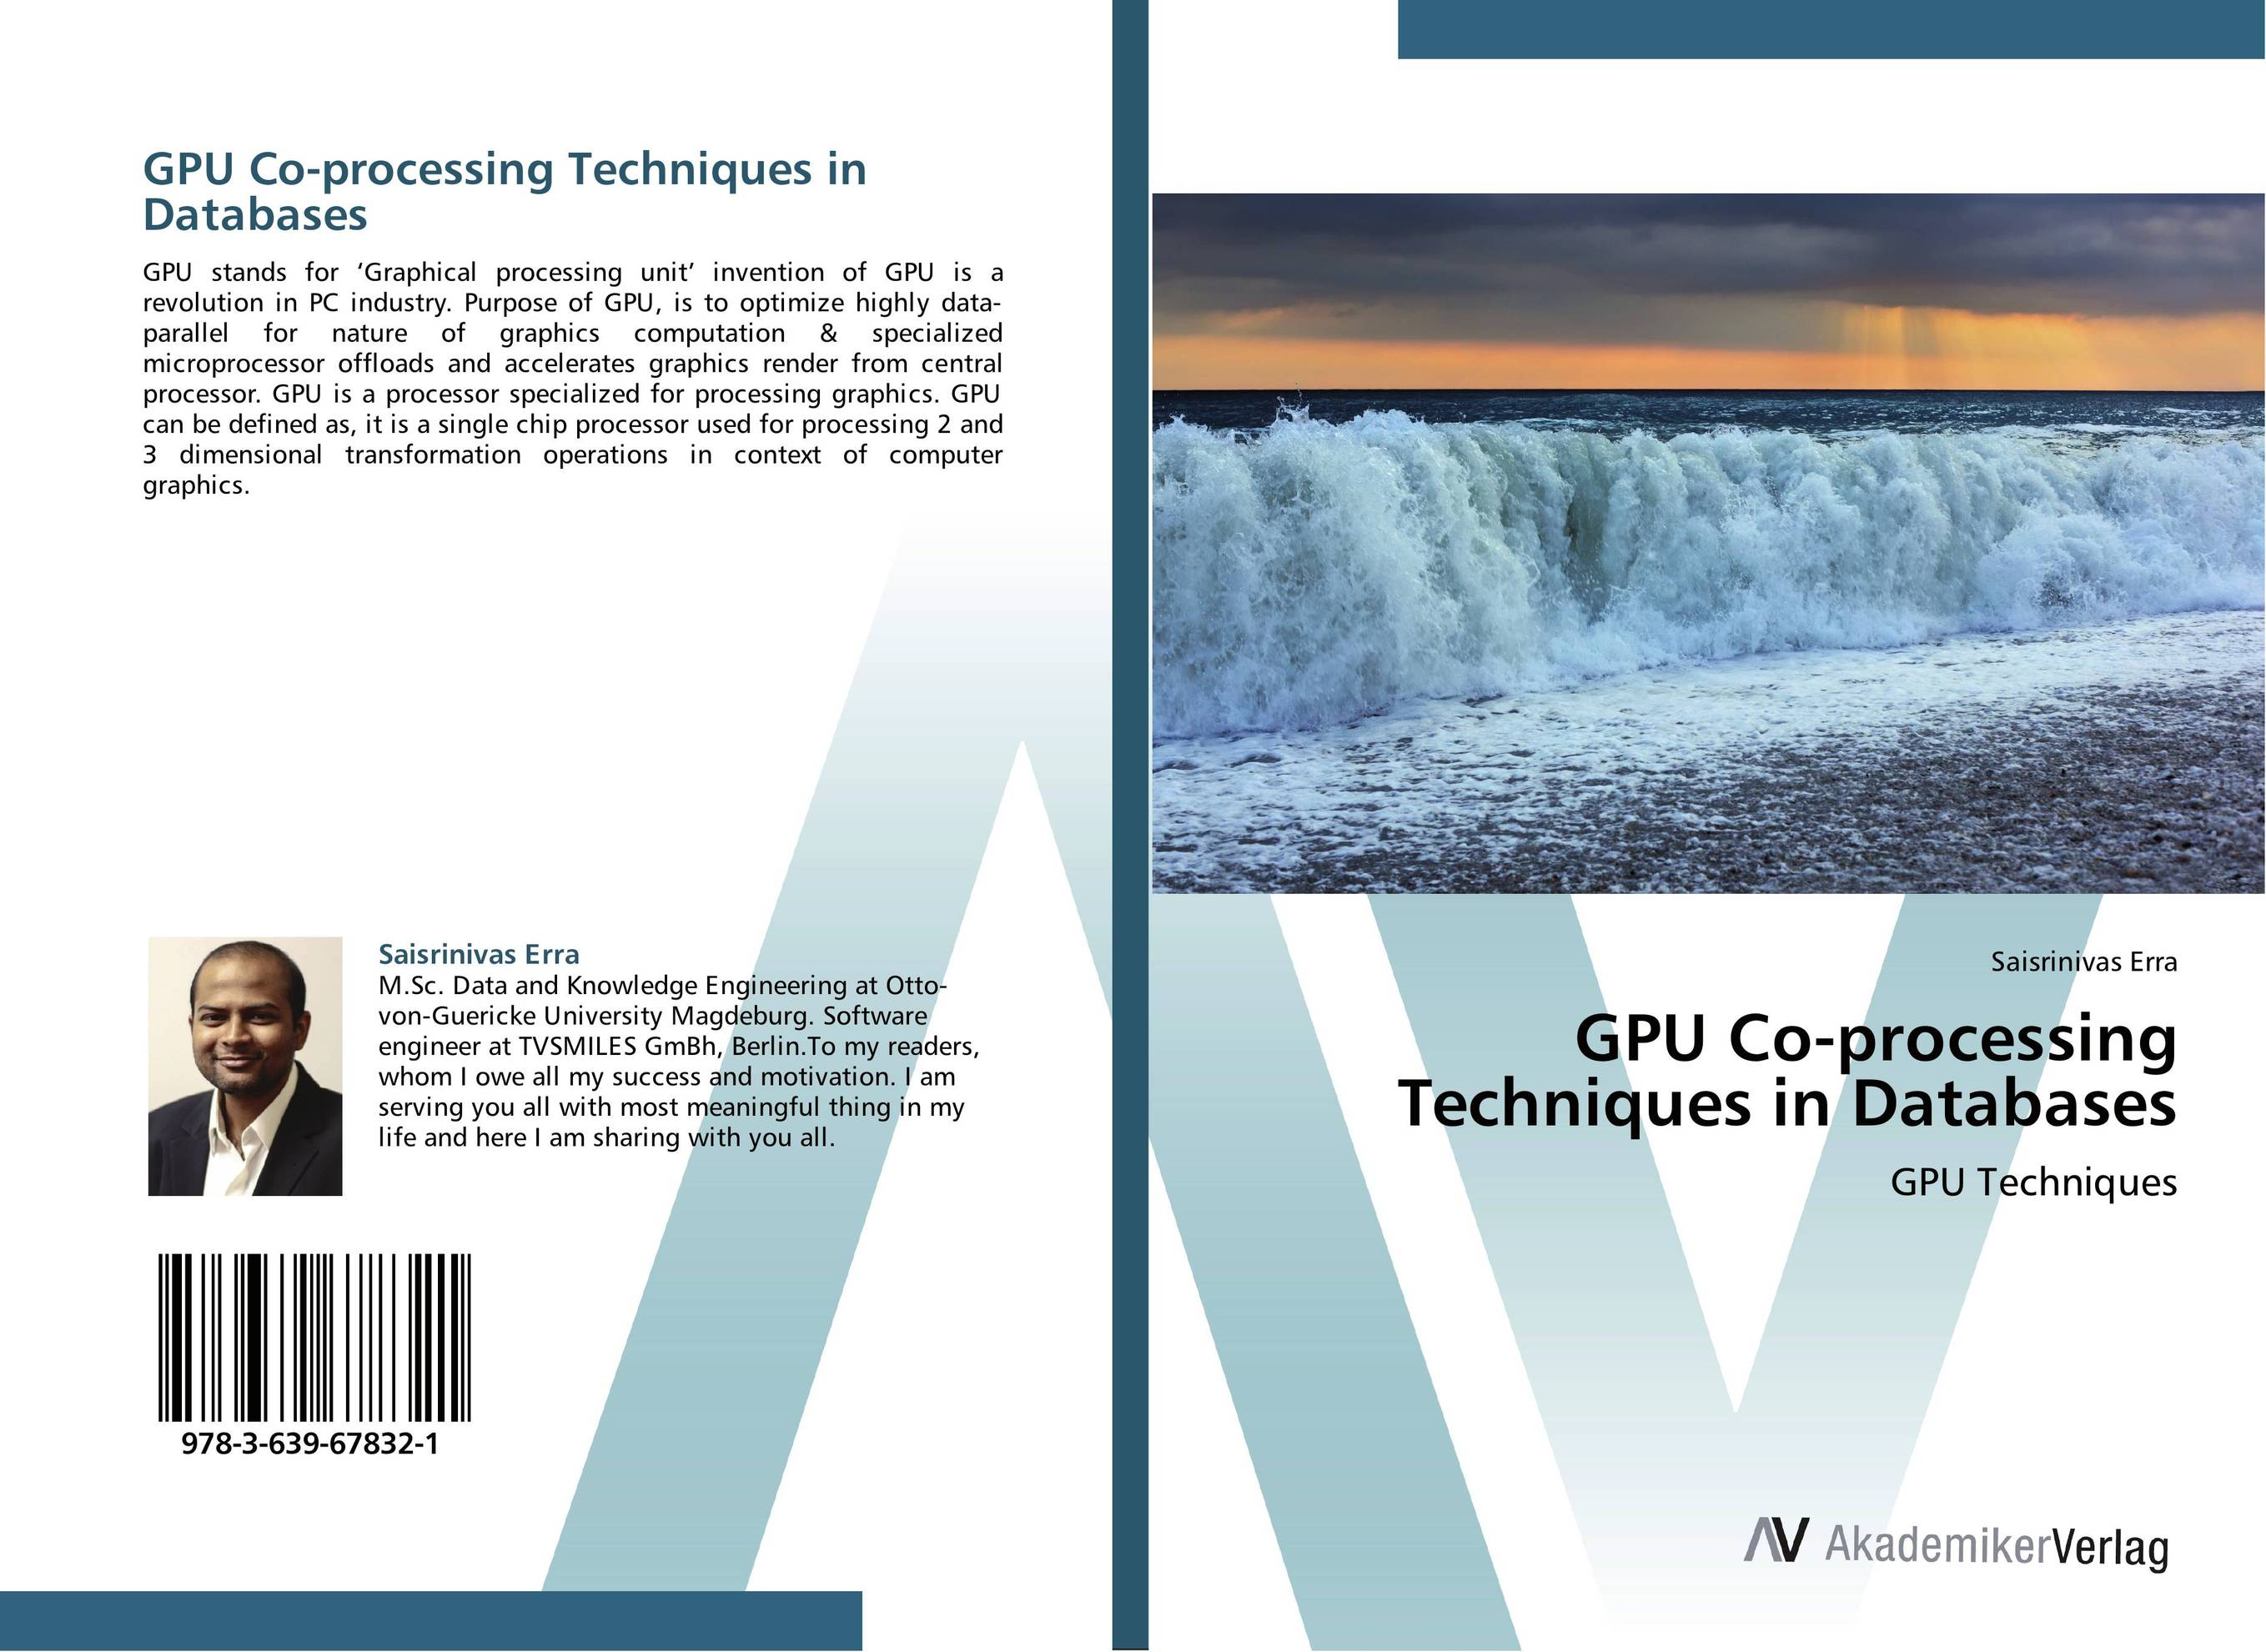 GPU Co-processing Techniques in Databases